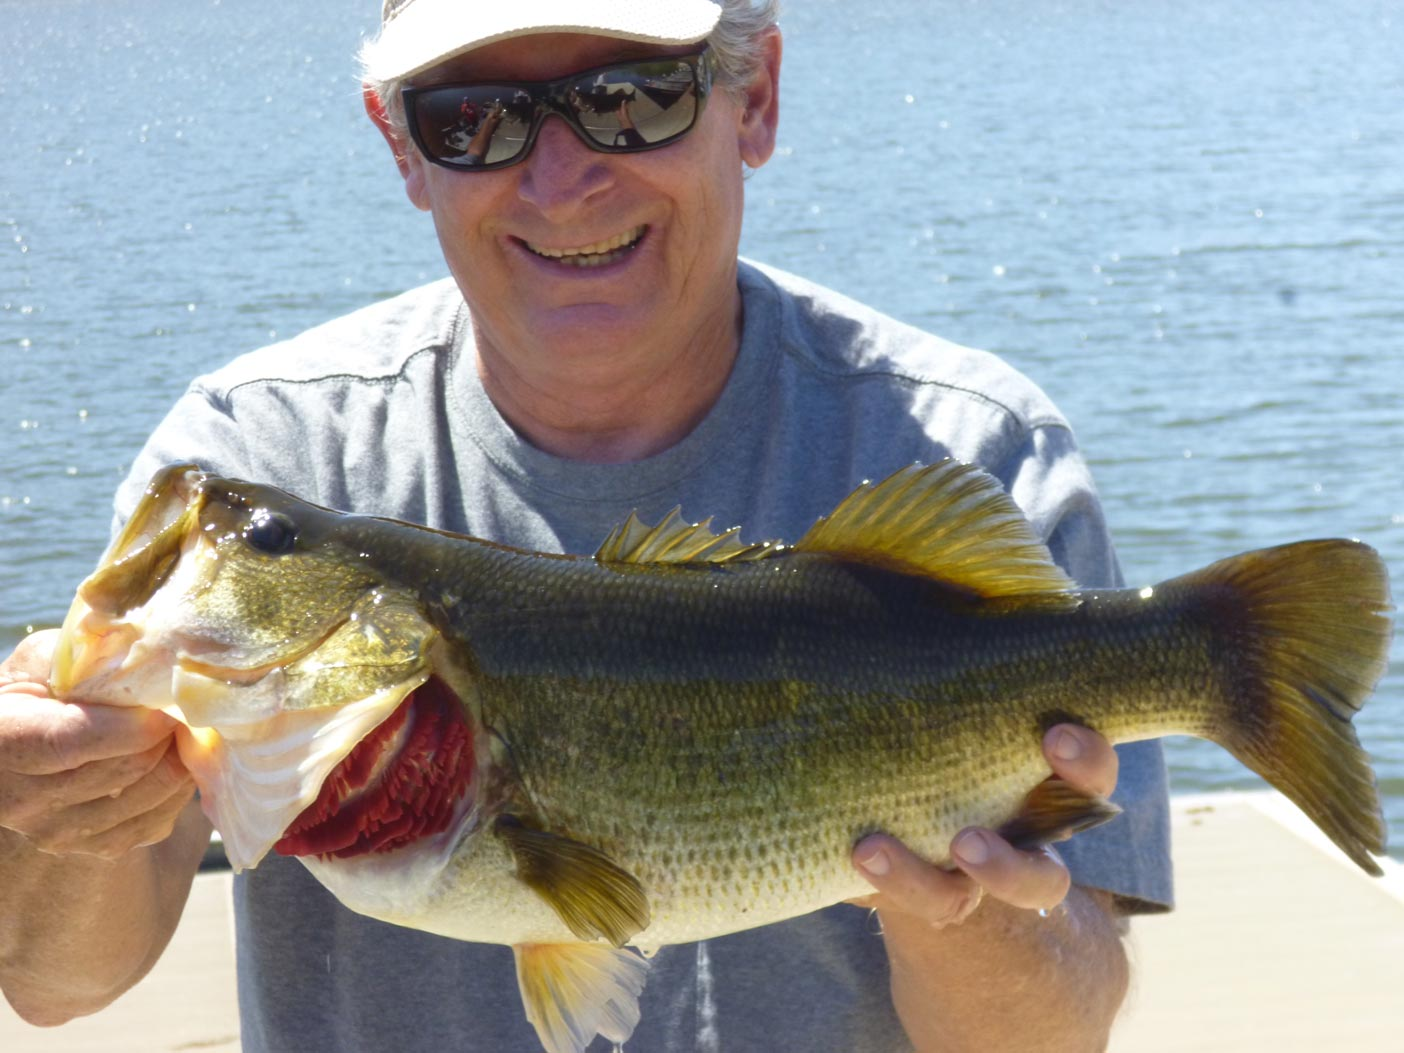 Lake wohlford fish report 9 3 16 for Lake wohlford fishing report